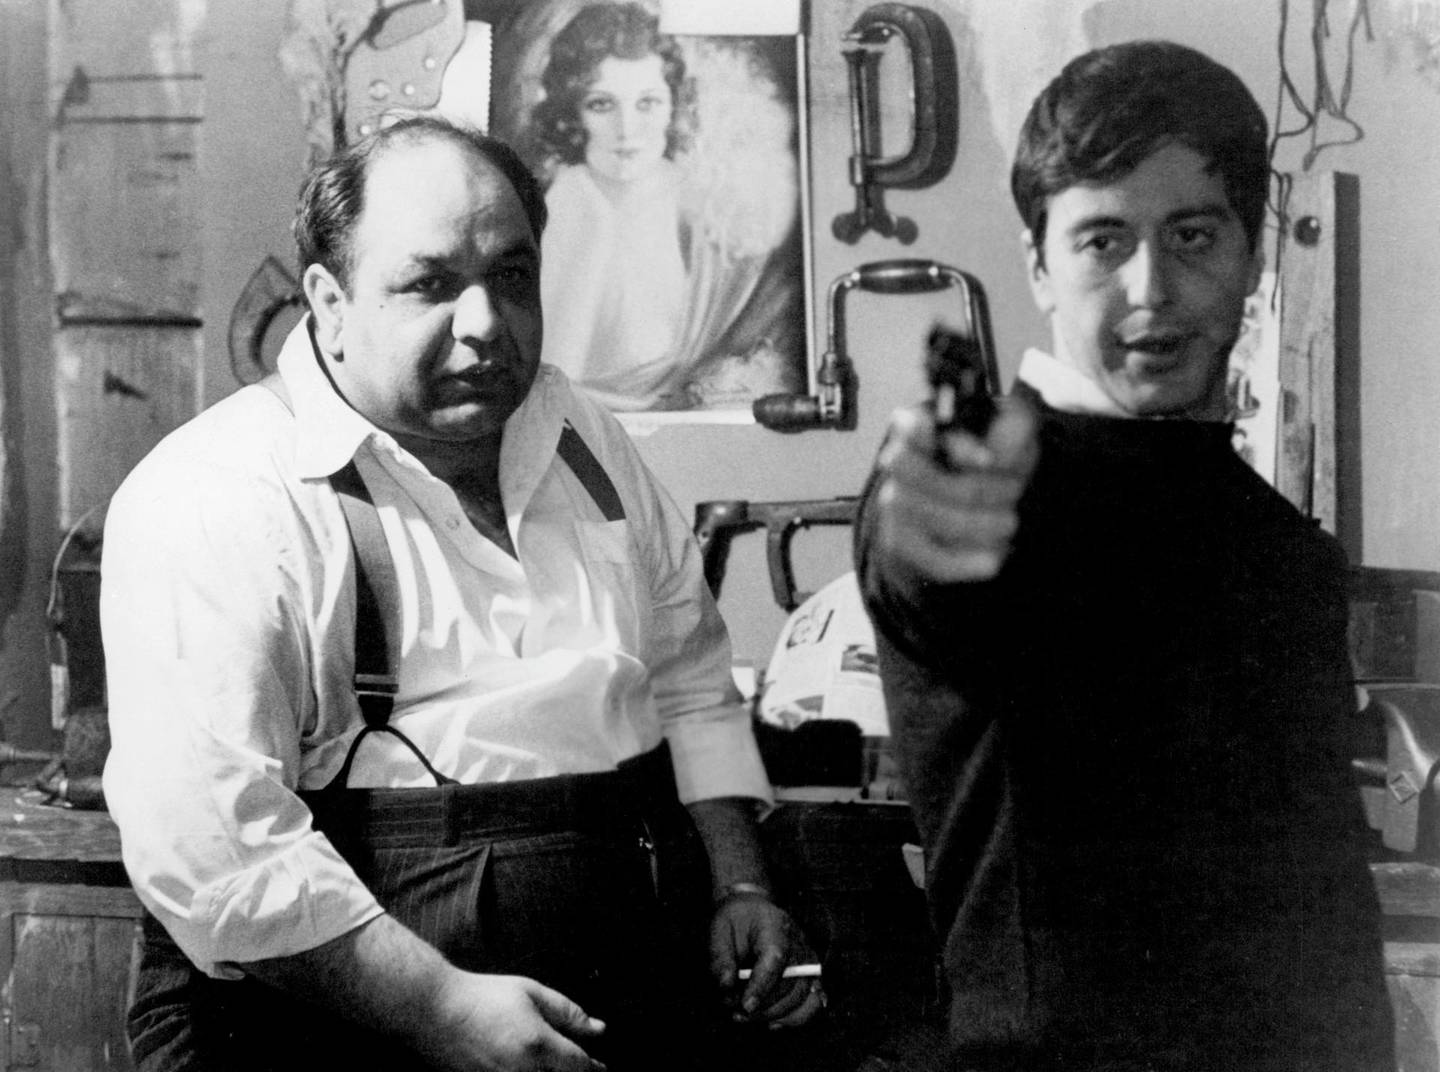 Richard S Castellano watching Al Pacino aim gun in a scene from the film 'The Godfather', 1972. (Photo by Paramount/Getty Images)